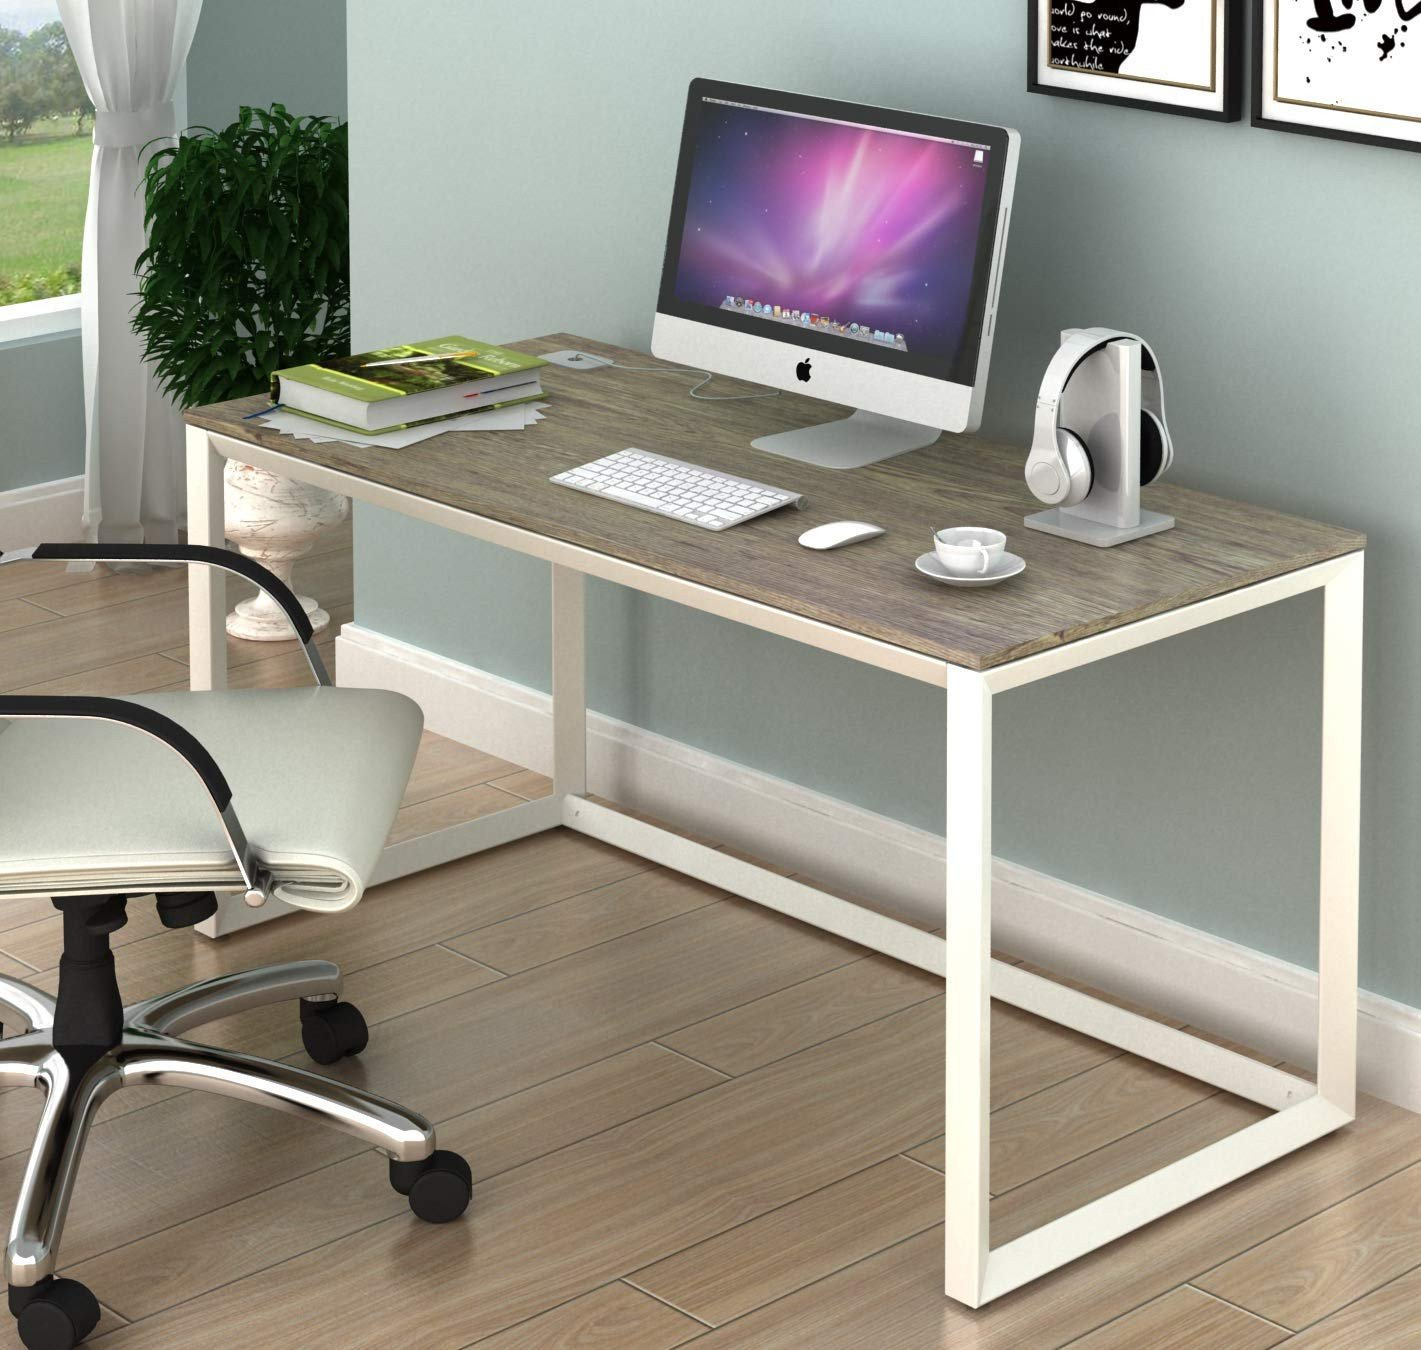 Computer Desk for Small Bedroom New Shw Triangle Leg Home Fice Puter Desk